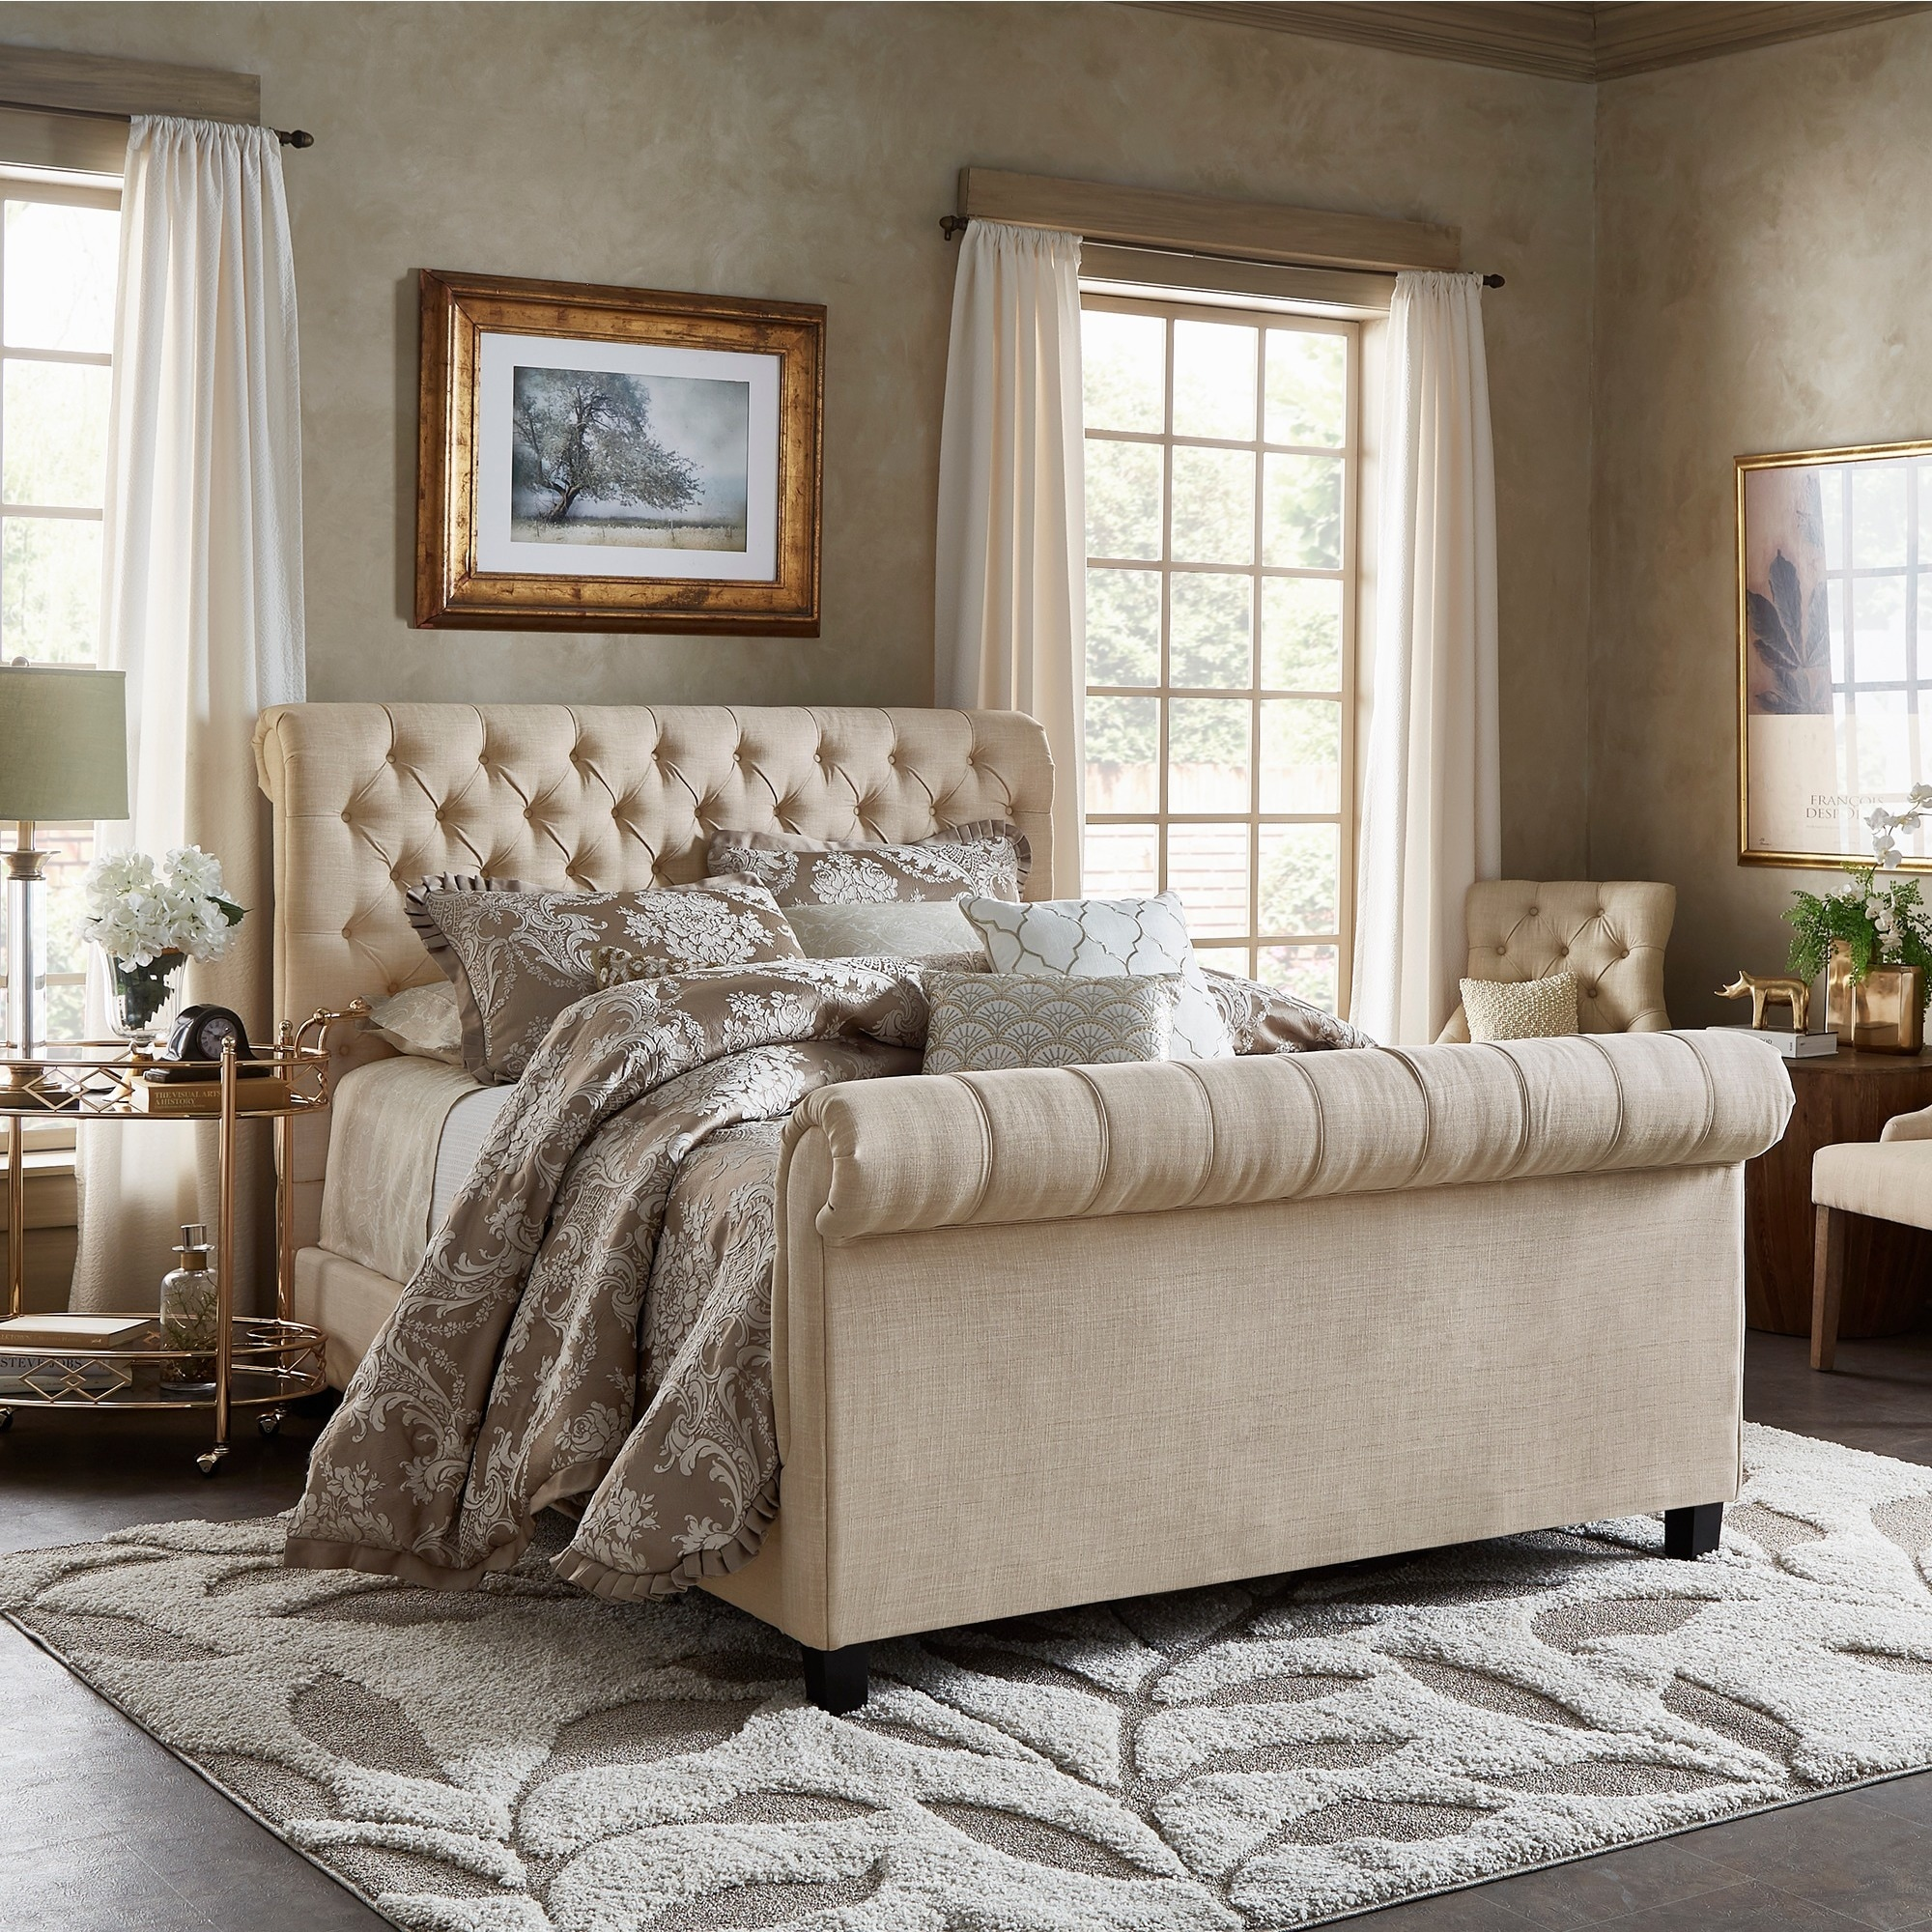 Knightsbridge Beige Linen Rolled Top Tufted Platform Bed With Footboard By Inspire Q Artisan Overstock 9827135